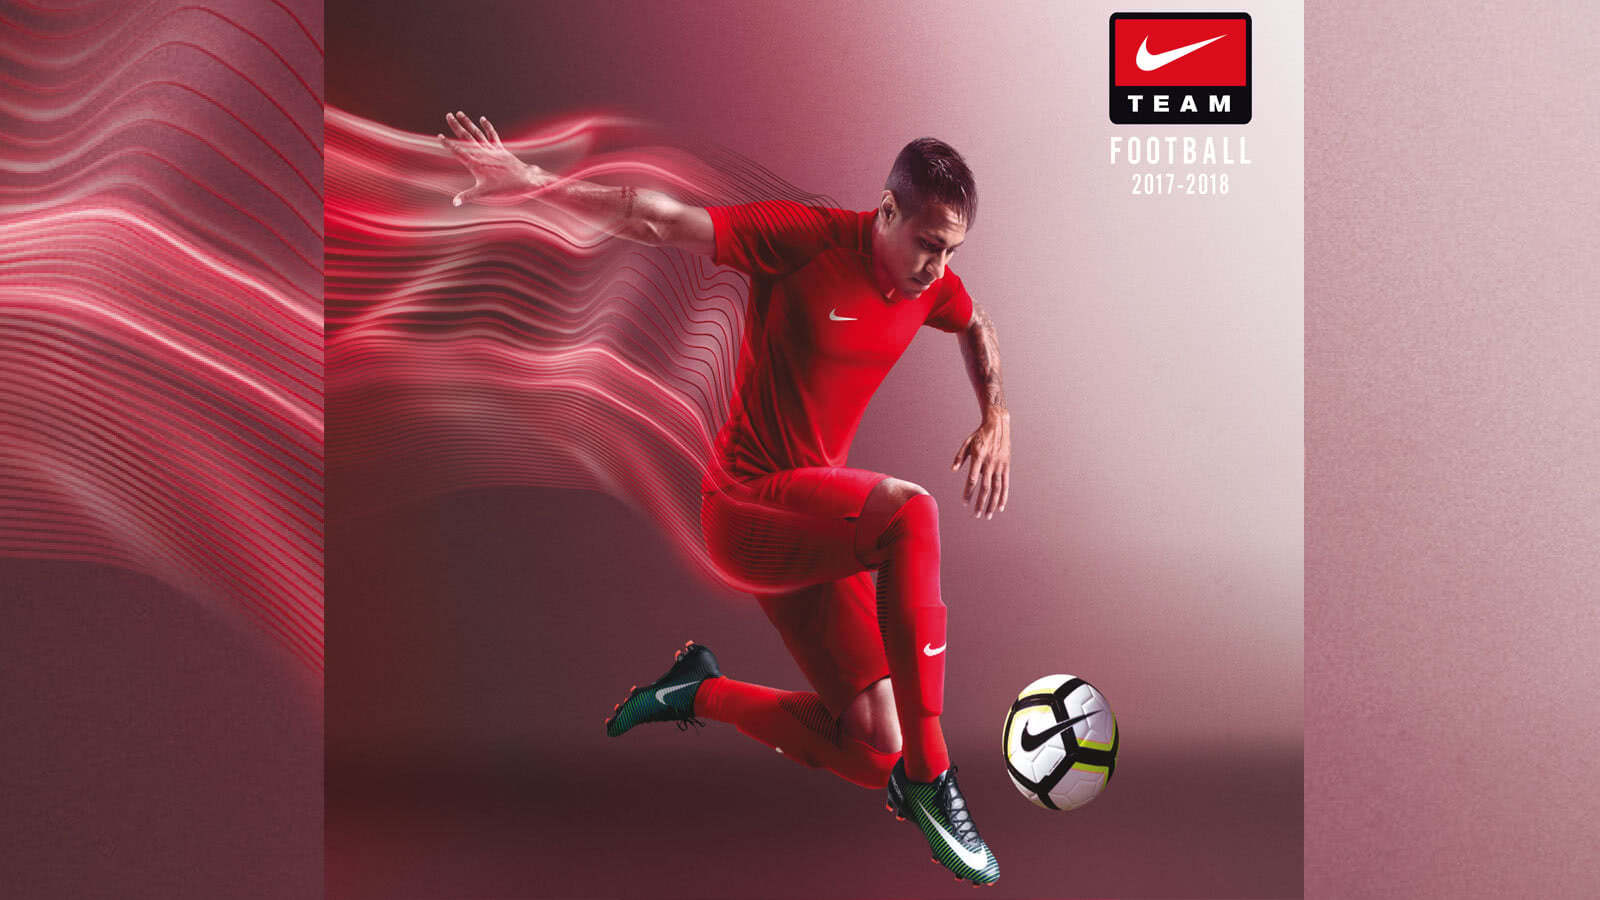 nike football katalog 2017 2018 sportartikel und fussballschuhe news. Black Bedroom Furniture Sets. Home Design Ideas